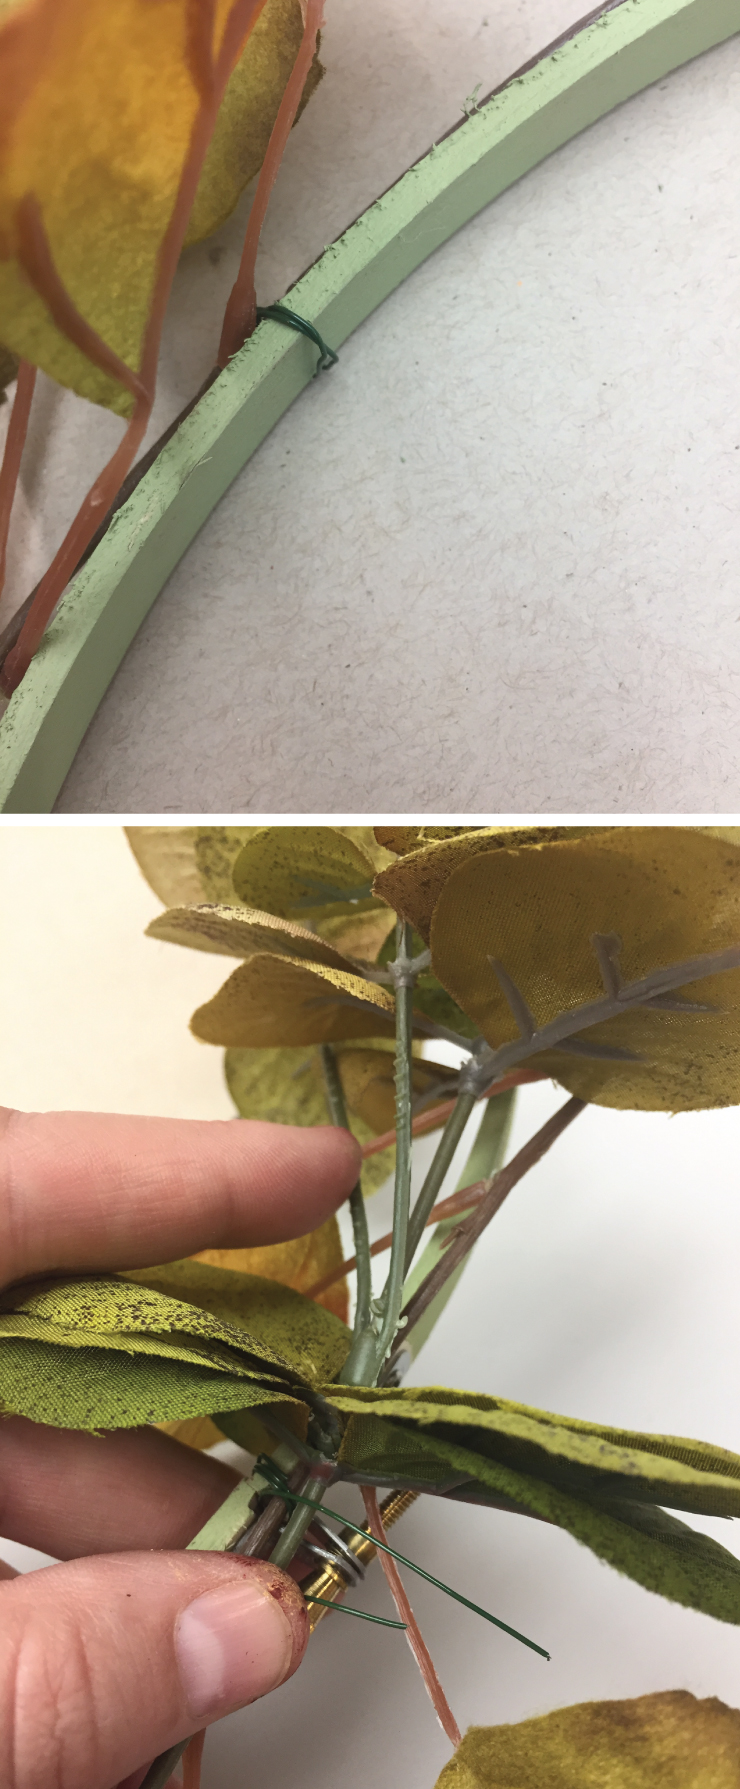 Pictures showing wire wrapped around the hoop holding a leaf in place.